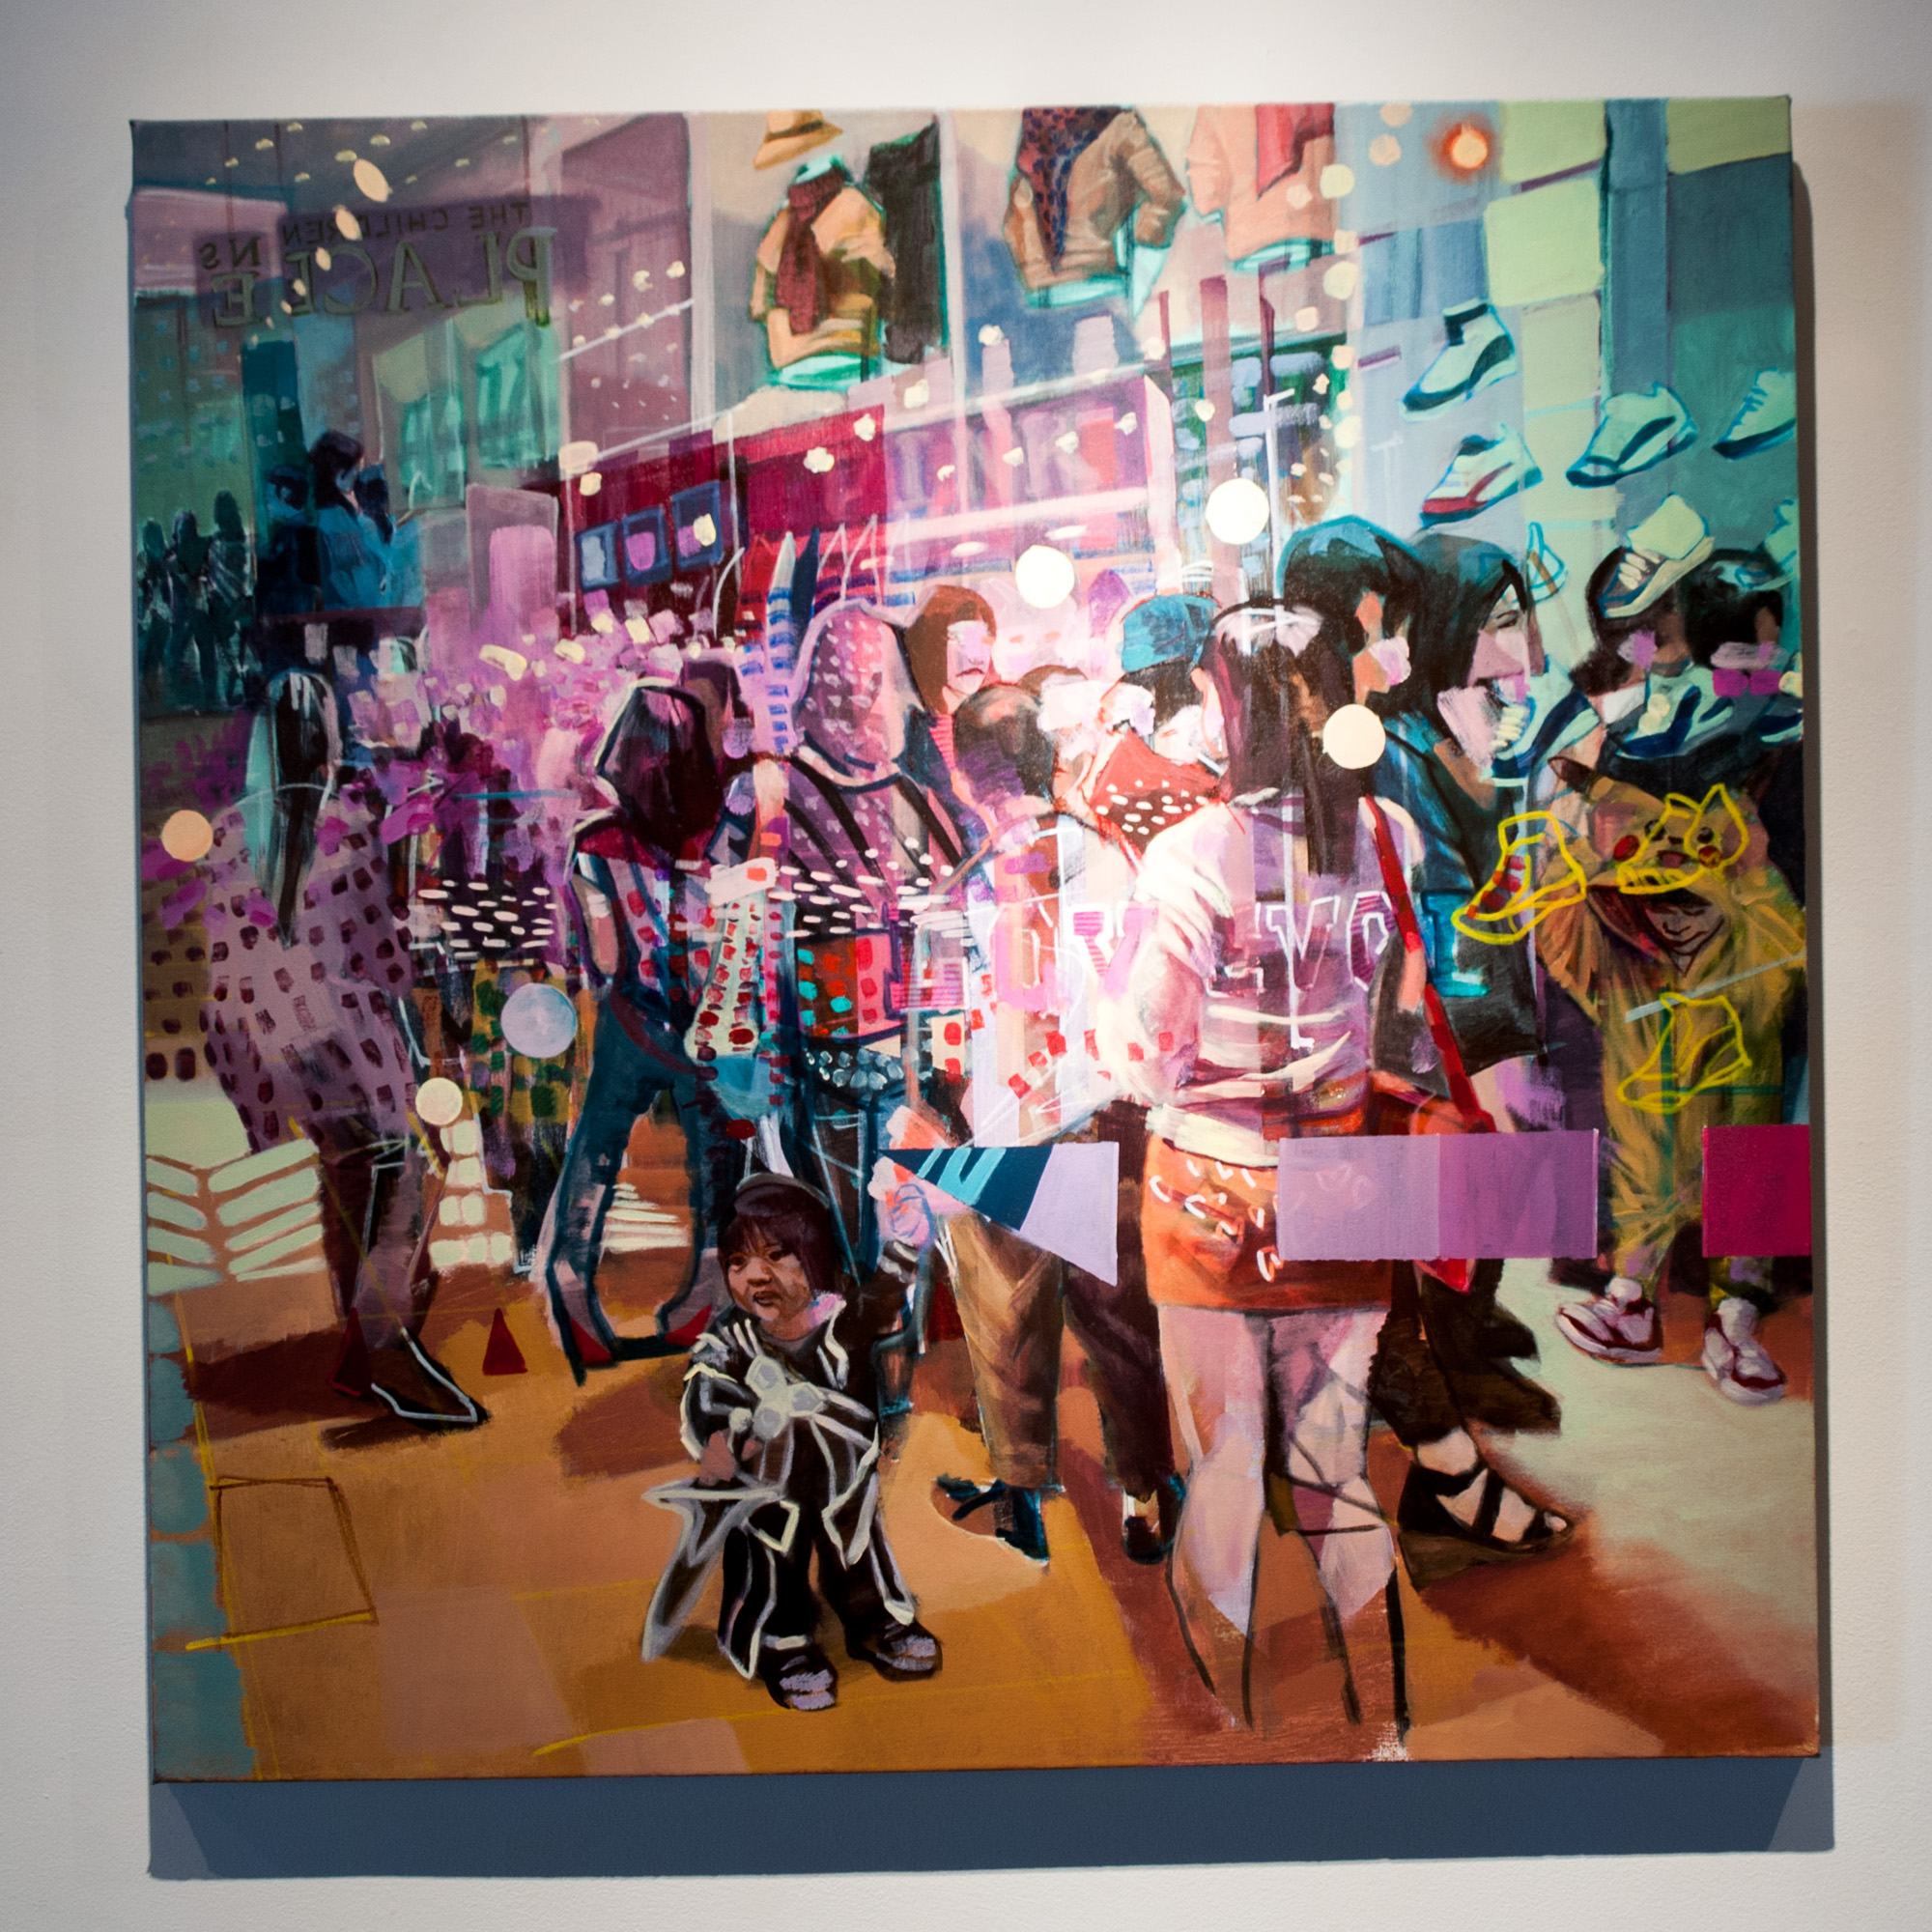 Dustin Lee Massey For the Love of Shoes acrylic on canvas 36 x 36 inches DLM 001G